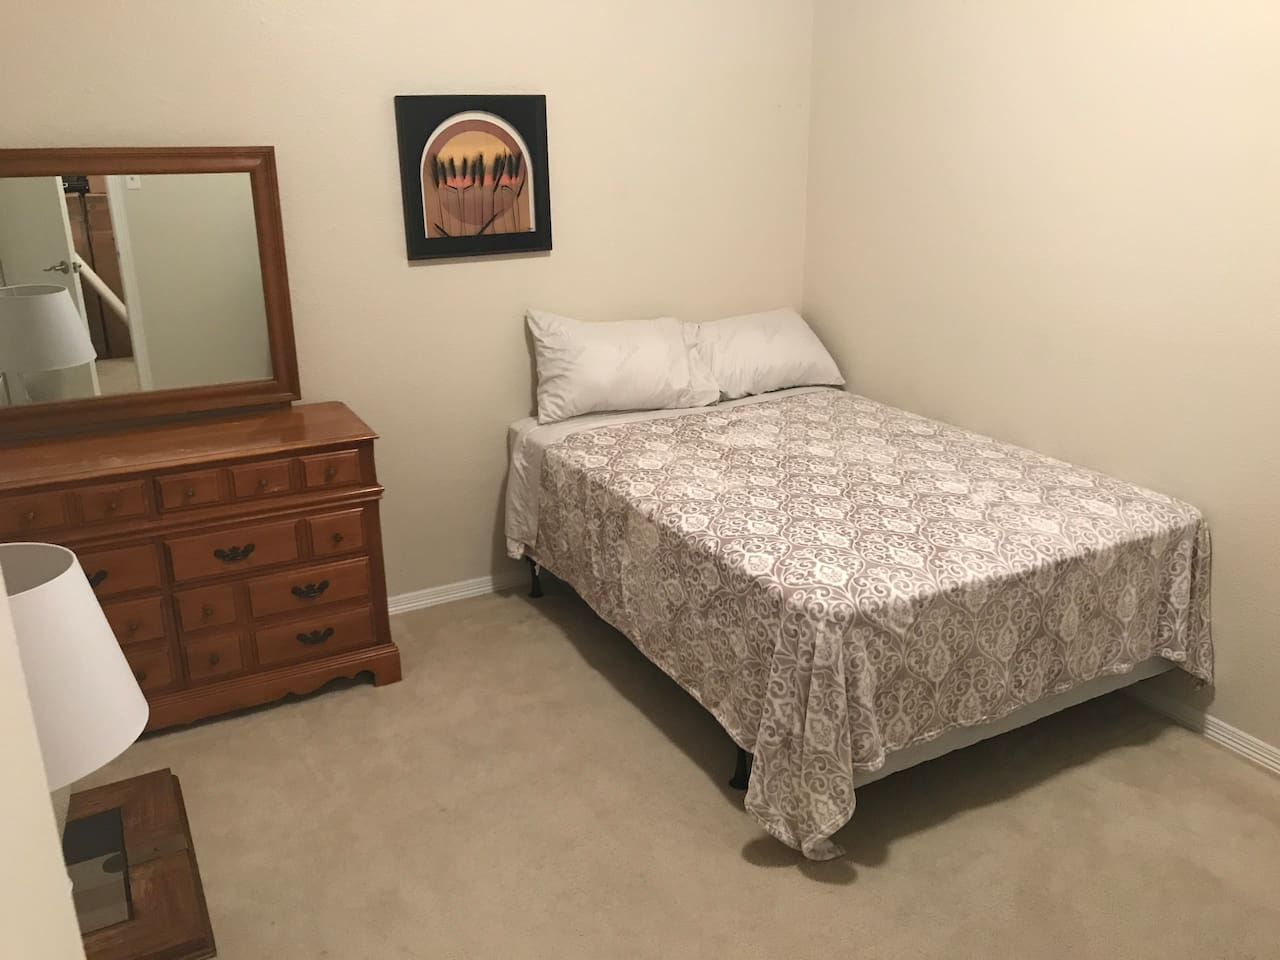 Room B. Full bed, dresser with mirror, office chair, HDTV, cable